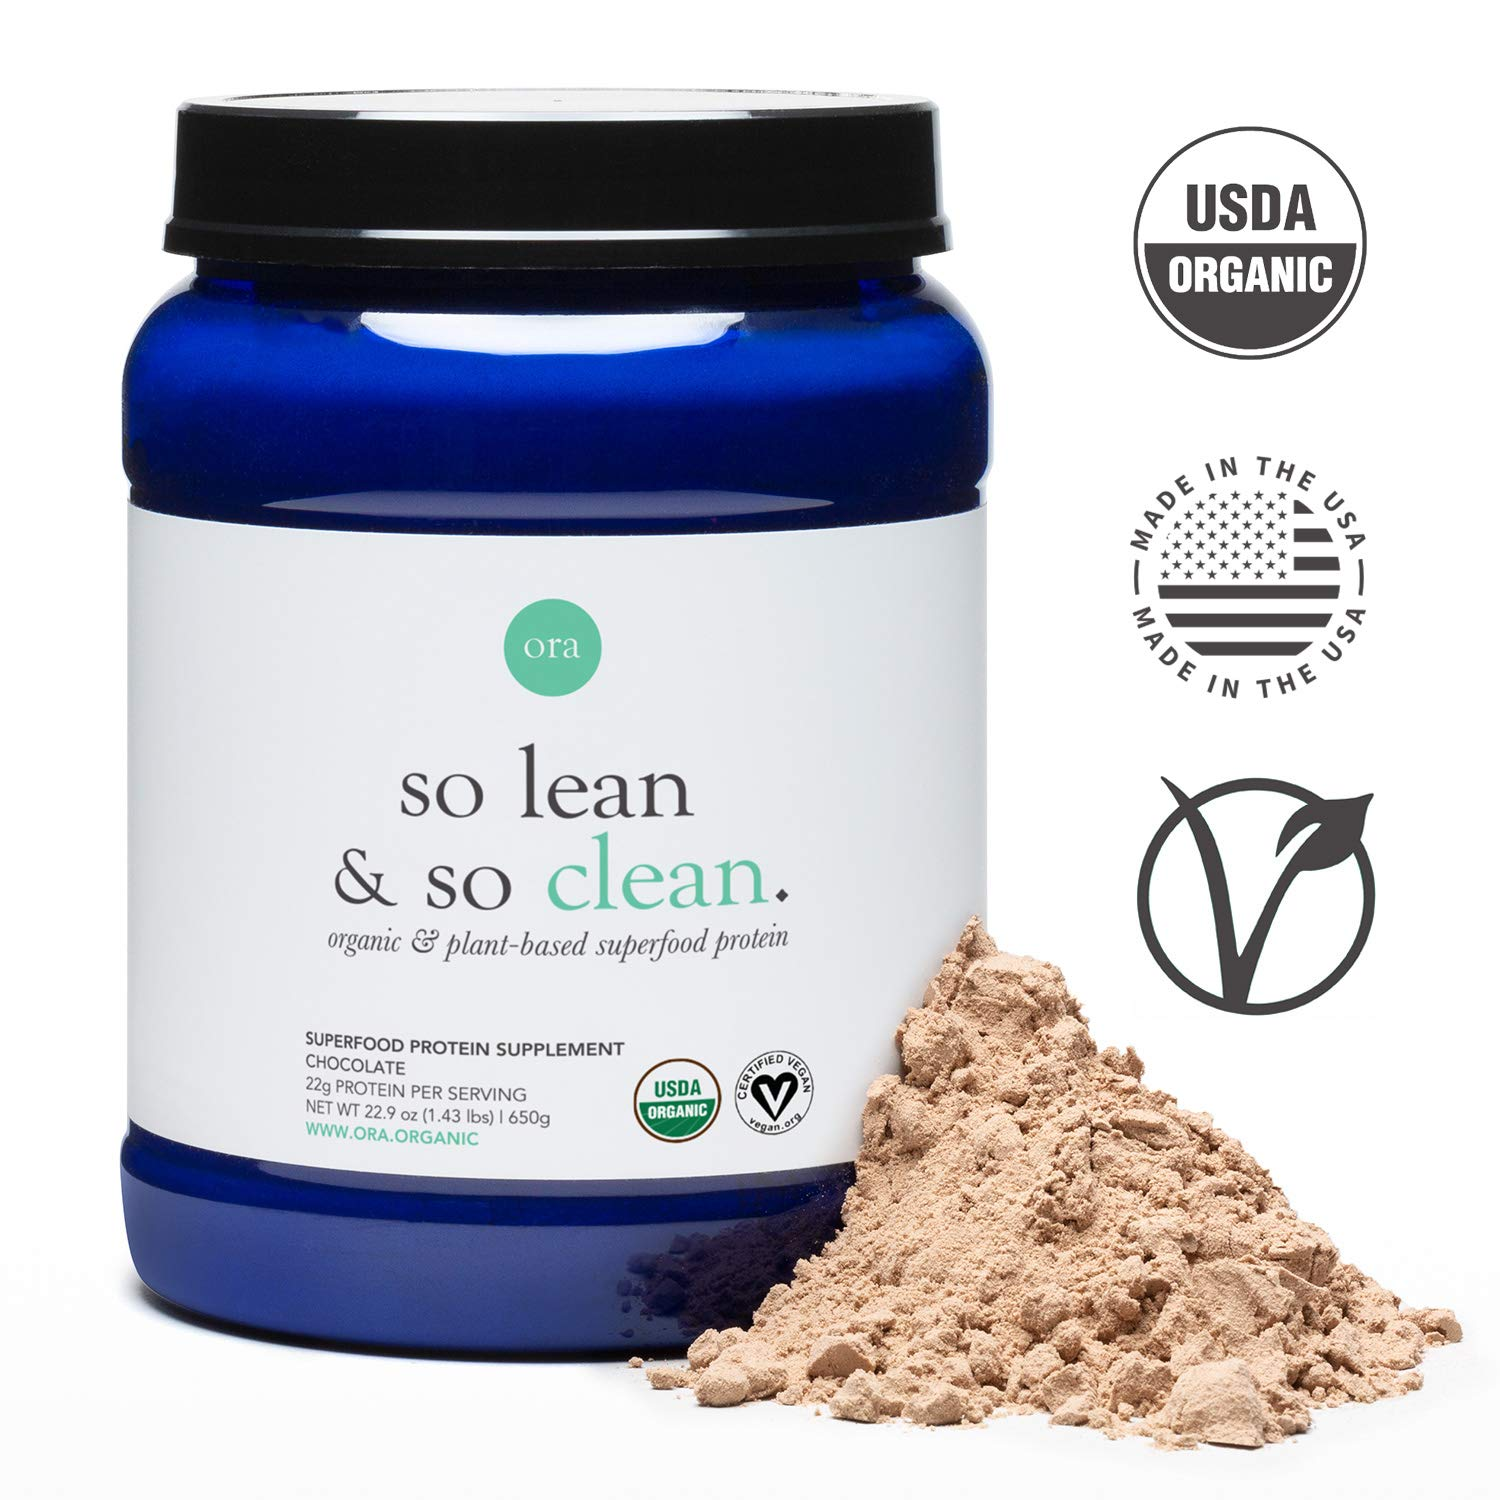 Ora Organic Vegan Protein Powder - 22g of Plant-Based Protein with Enzymes for Digestion & 20+ Superfoods - Dairy-Free, Gluten-Free, Soy-Free, Paleo, Keto-Friendly - Chocolate Flavor, 20 Servings by Ora Organic